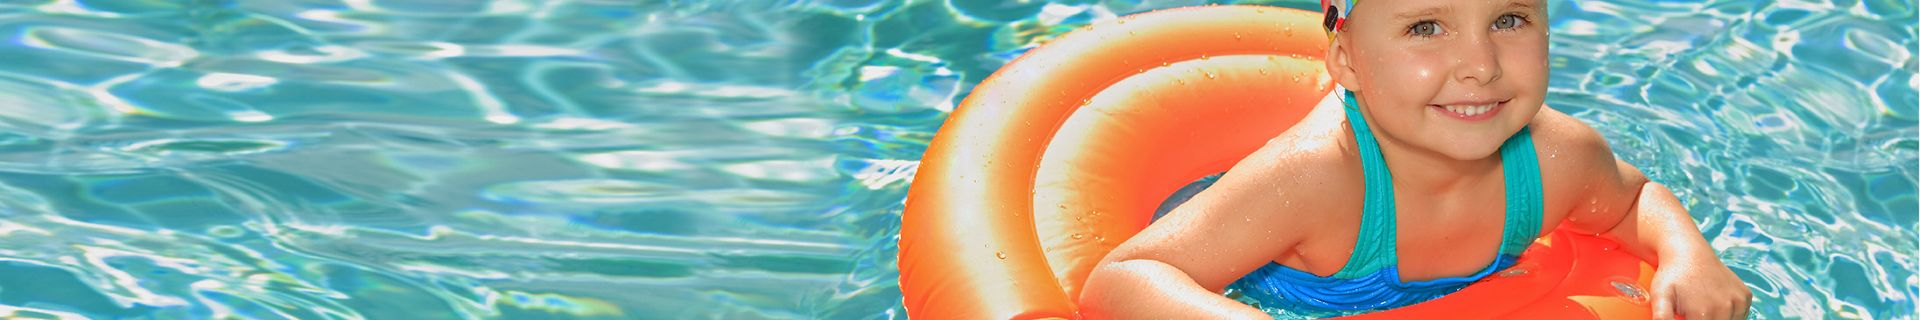 Child swimming in pool on floatie.